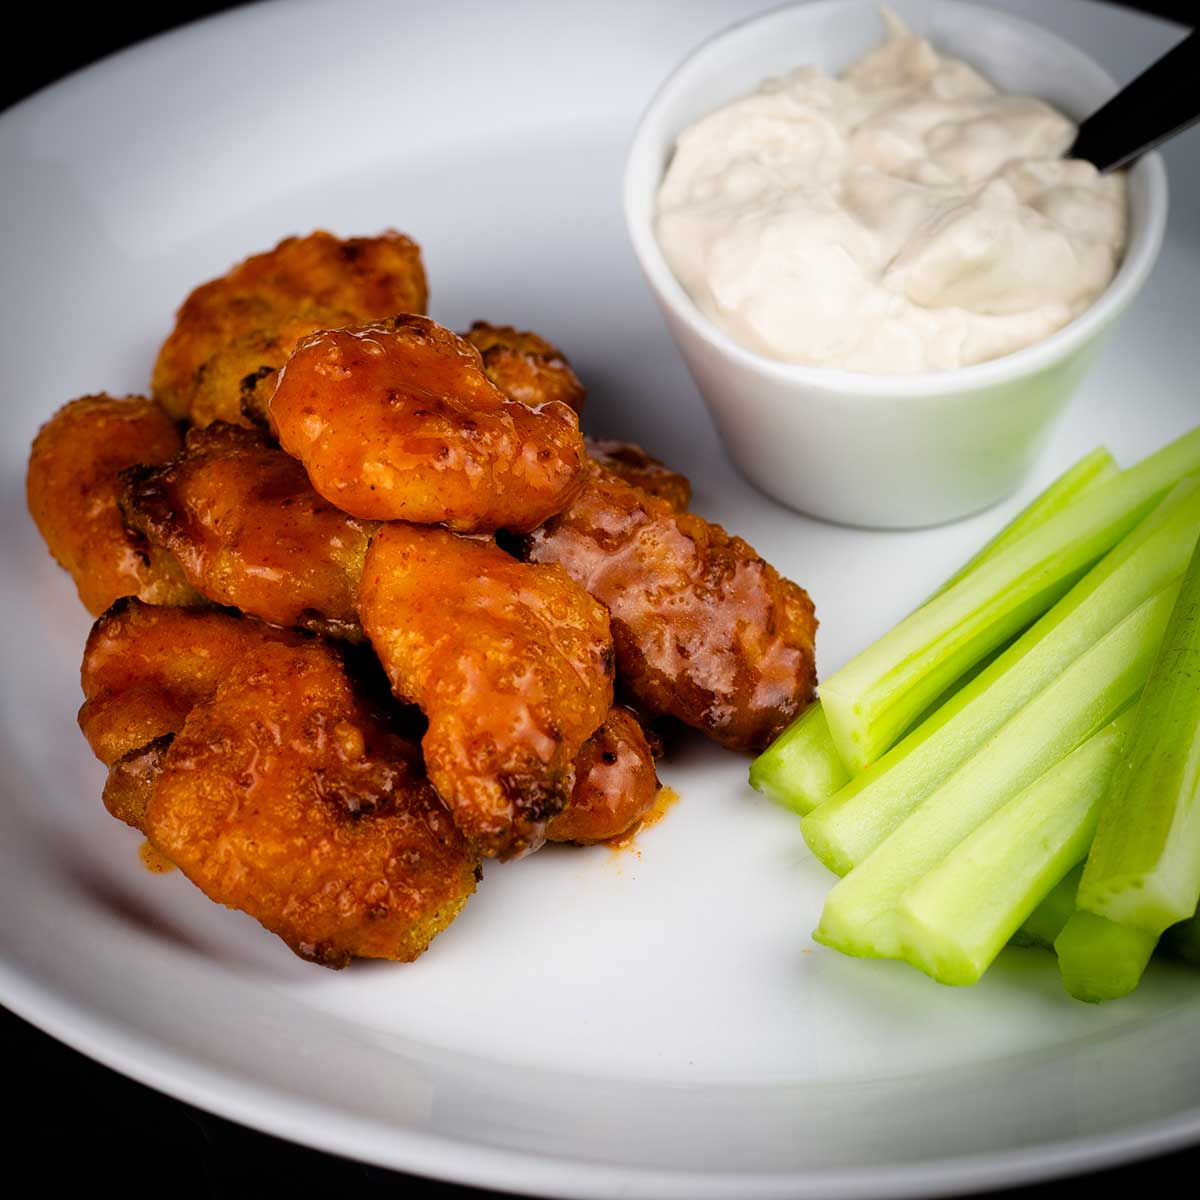 Boneless buffalo wings on a white plate with celery and blue cheese dressing